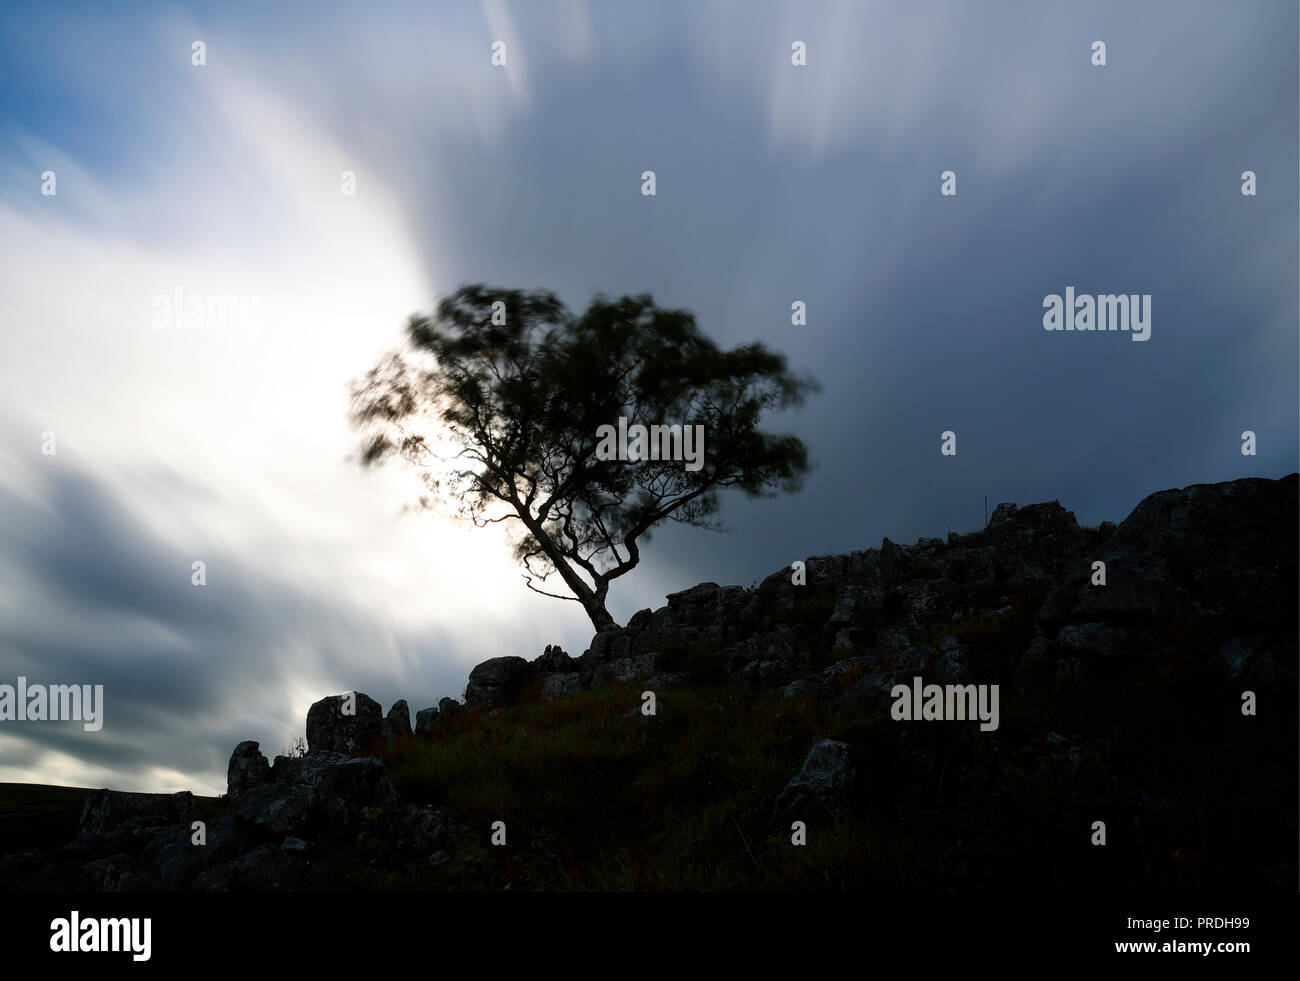 Hawthorn tree standing on hillside silhouetted against a dramatic sky on a windy day - Stock Image